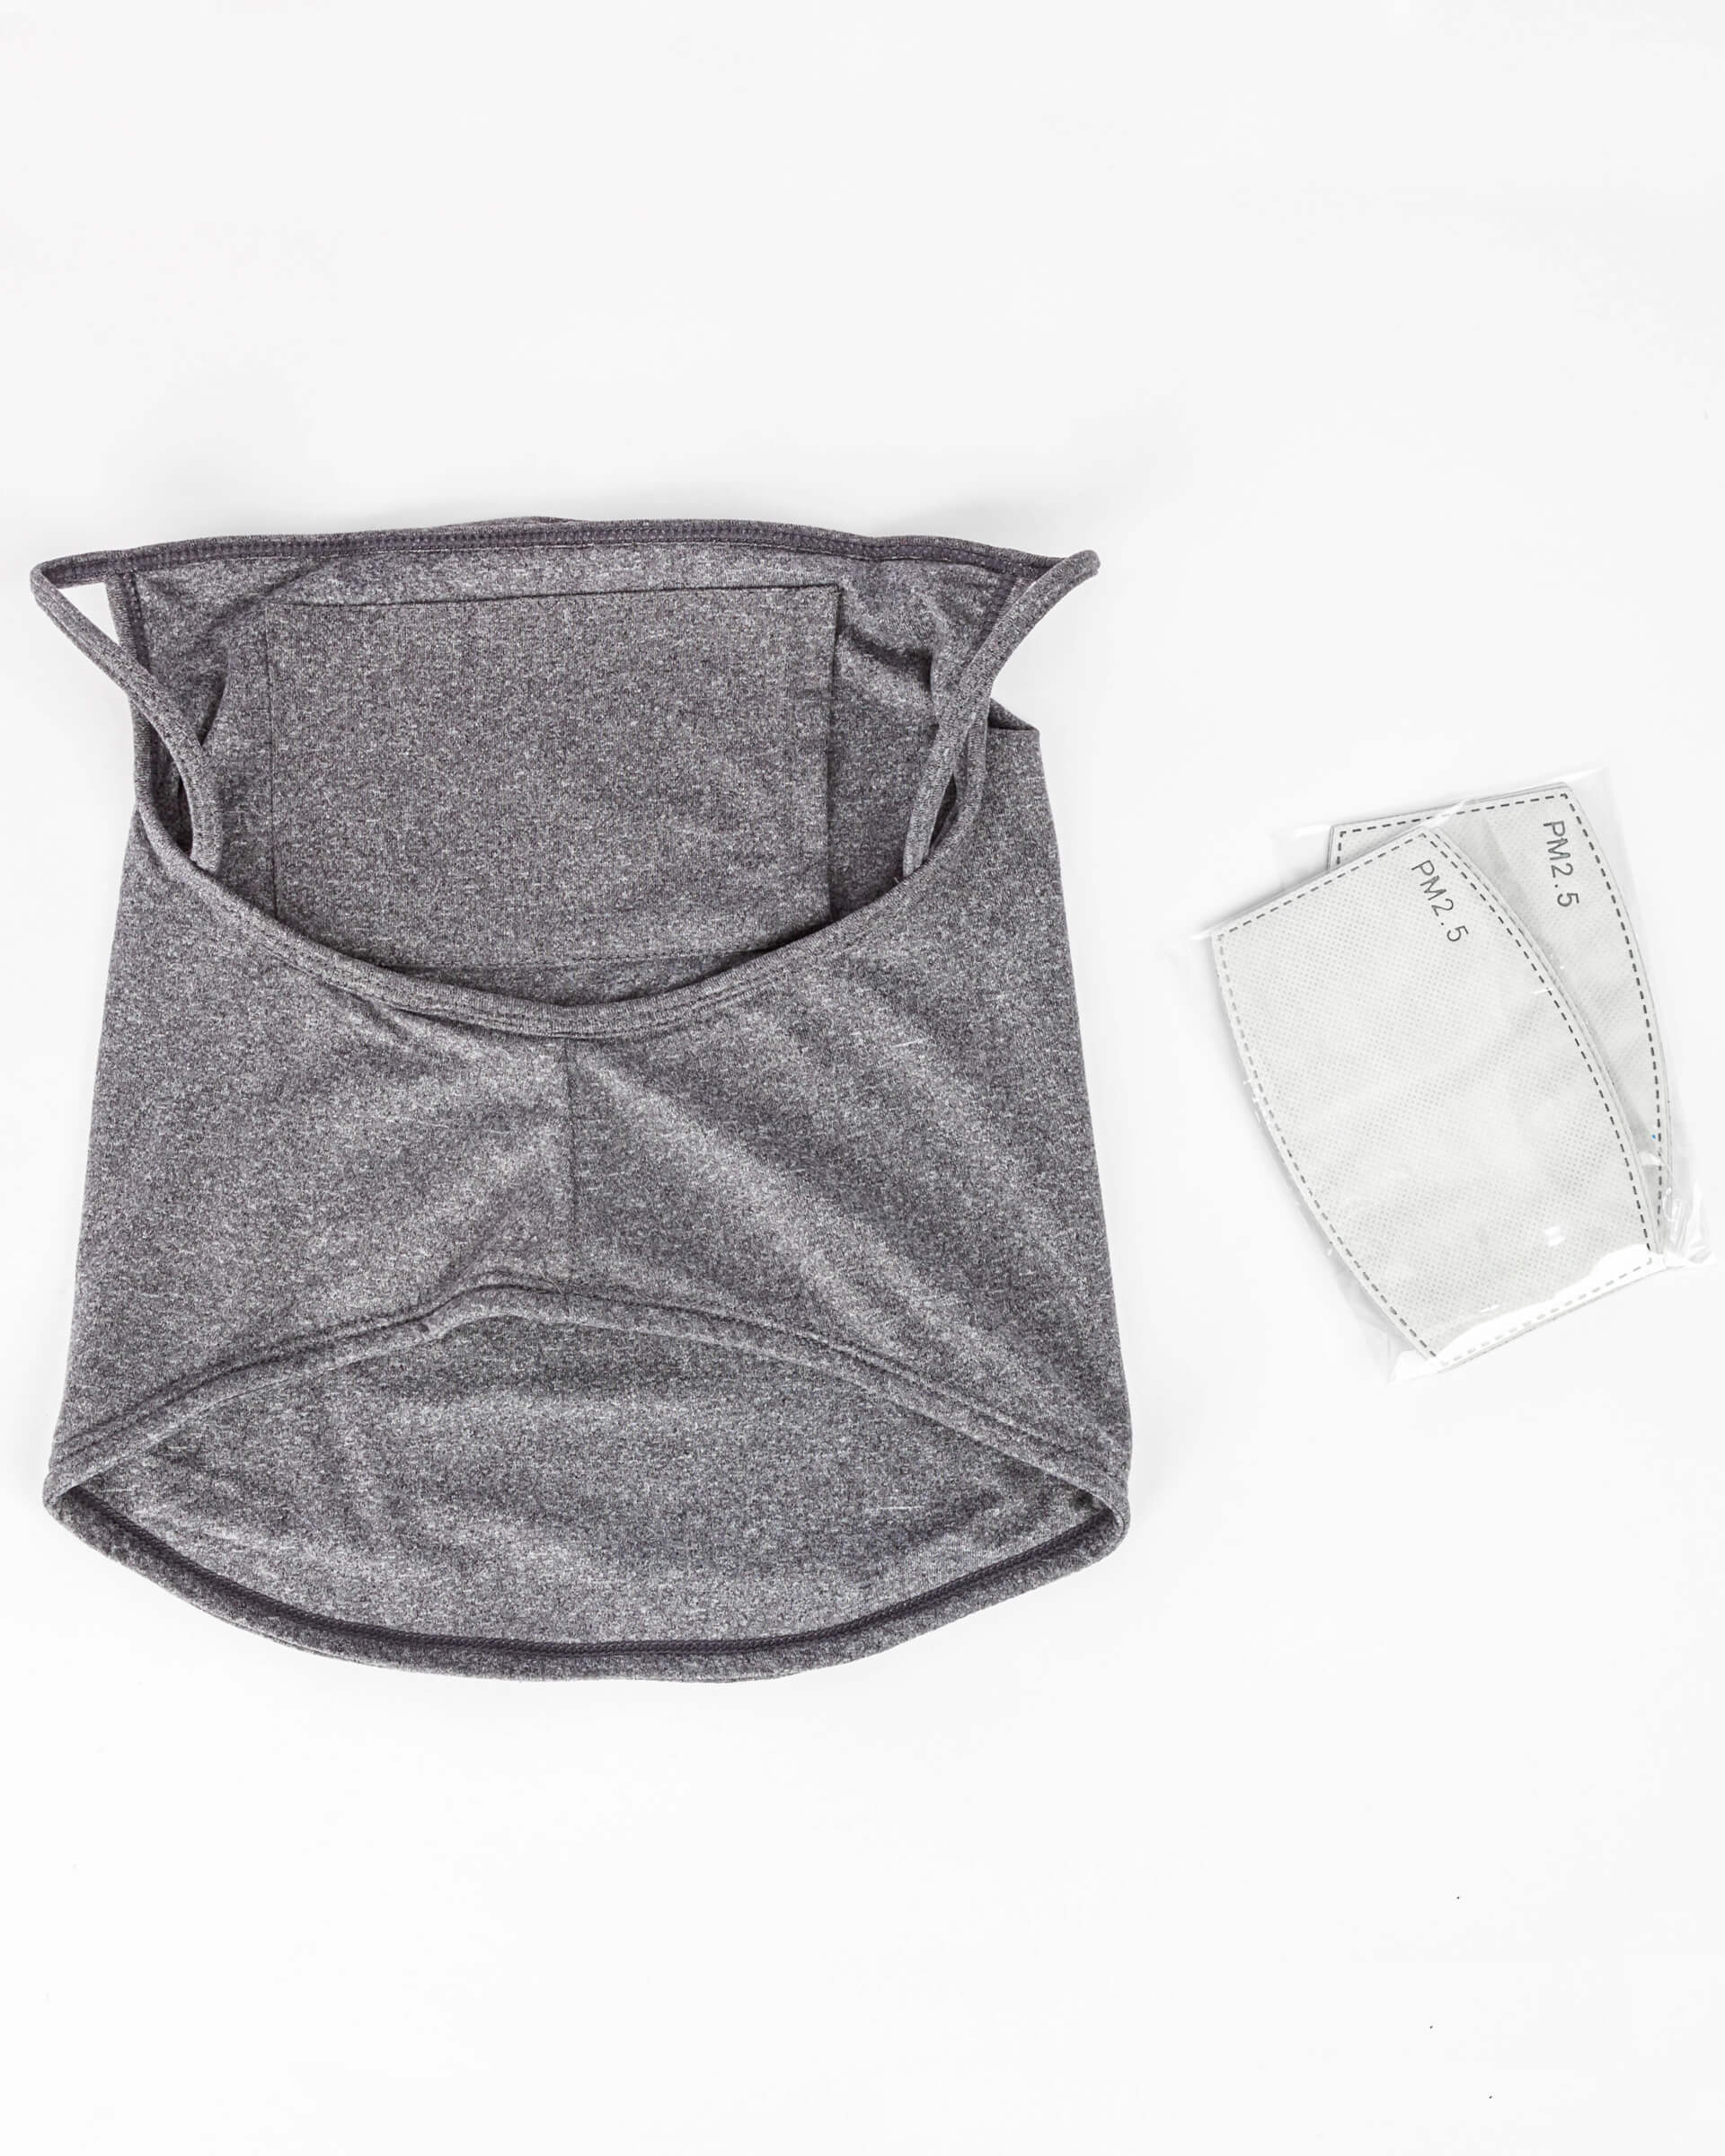 Women's Protective Face Mask Gaiter w/ Filter Pocket - 2PC Set